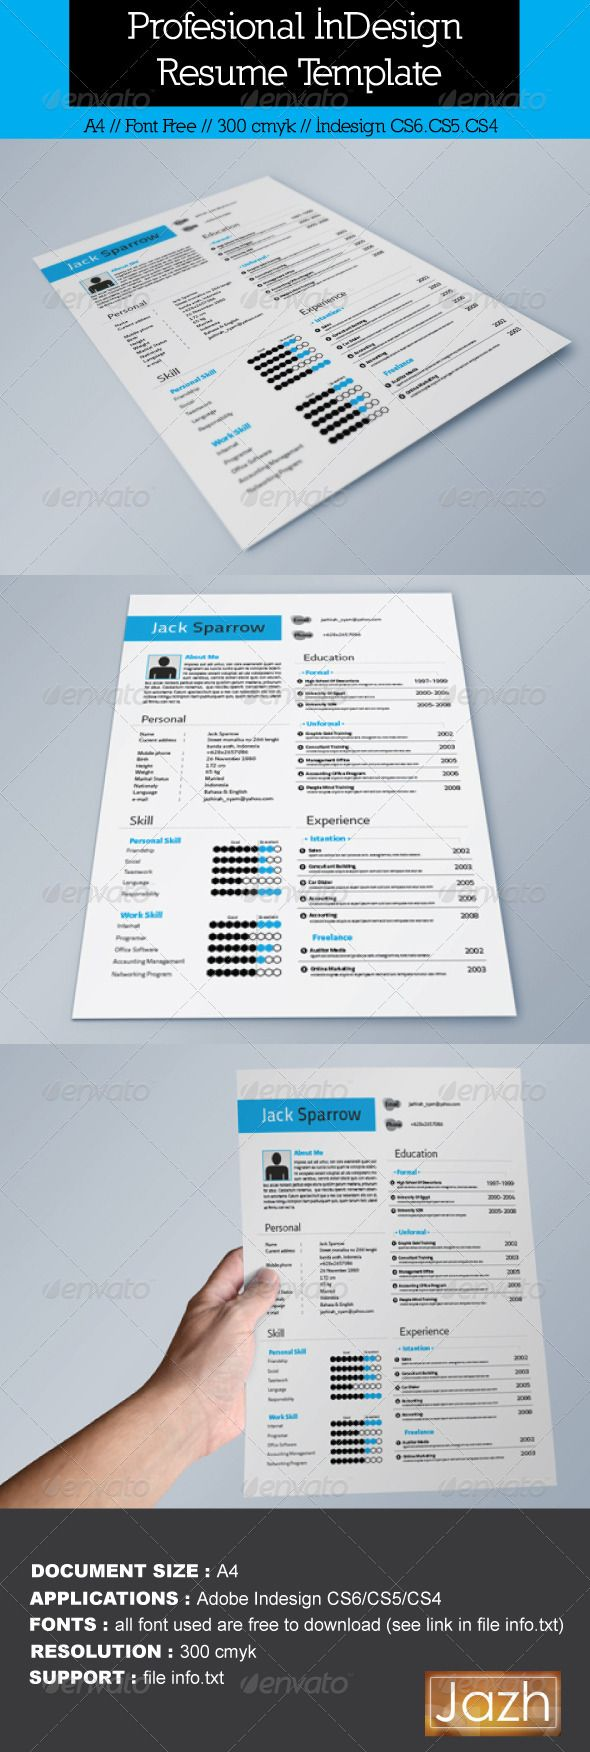 Resume Template Indesign Indesign Resume Template  Template Simple Resume And Print Templates